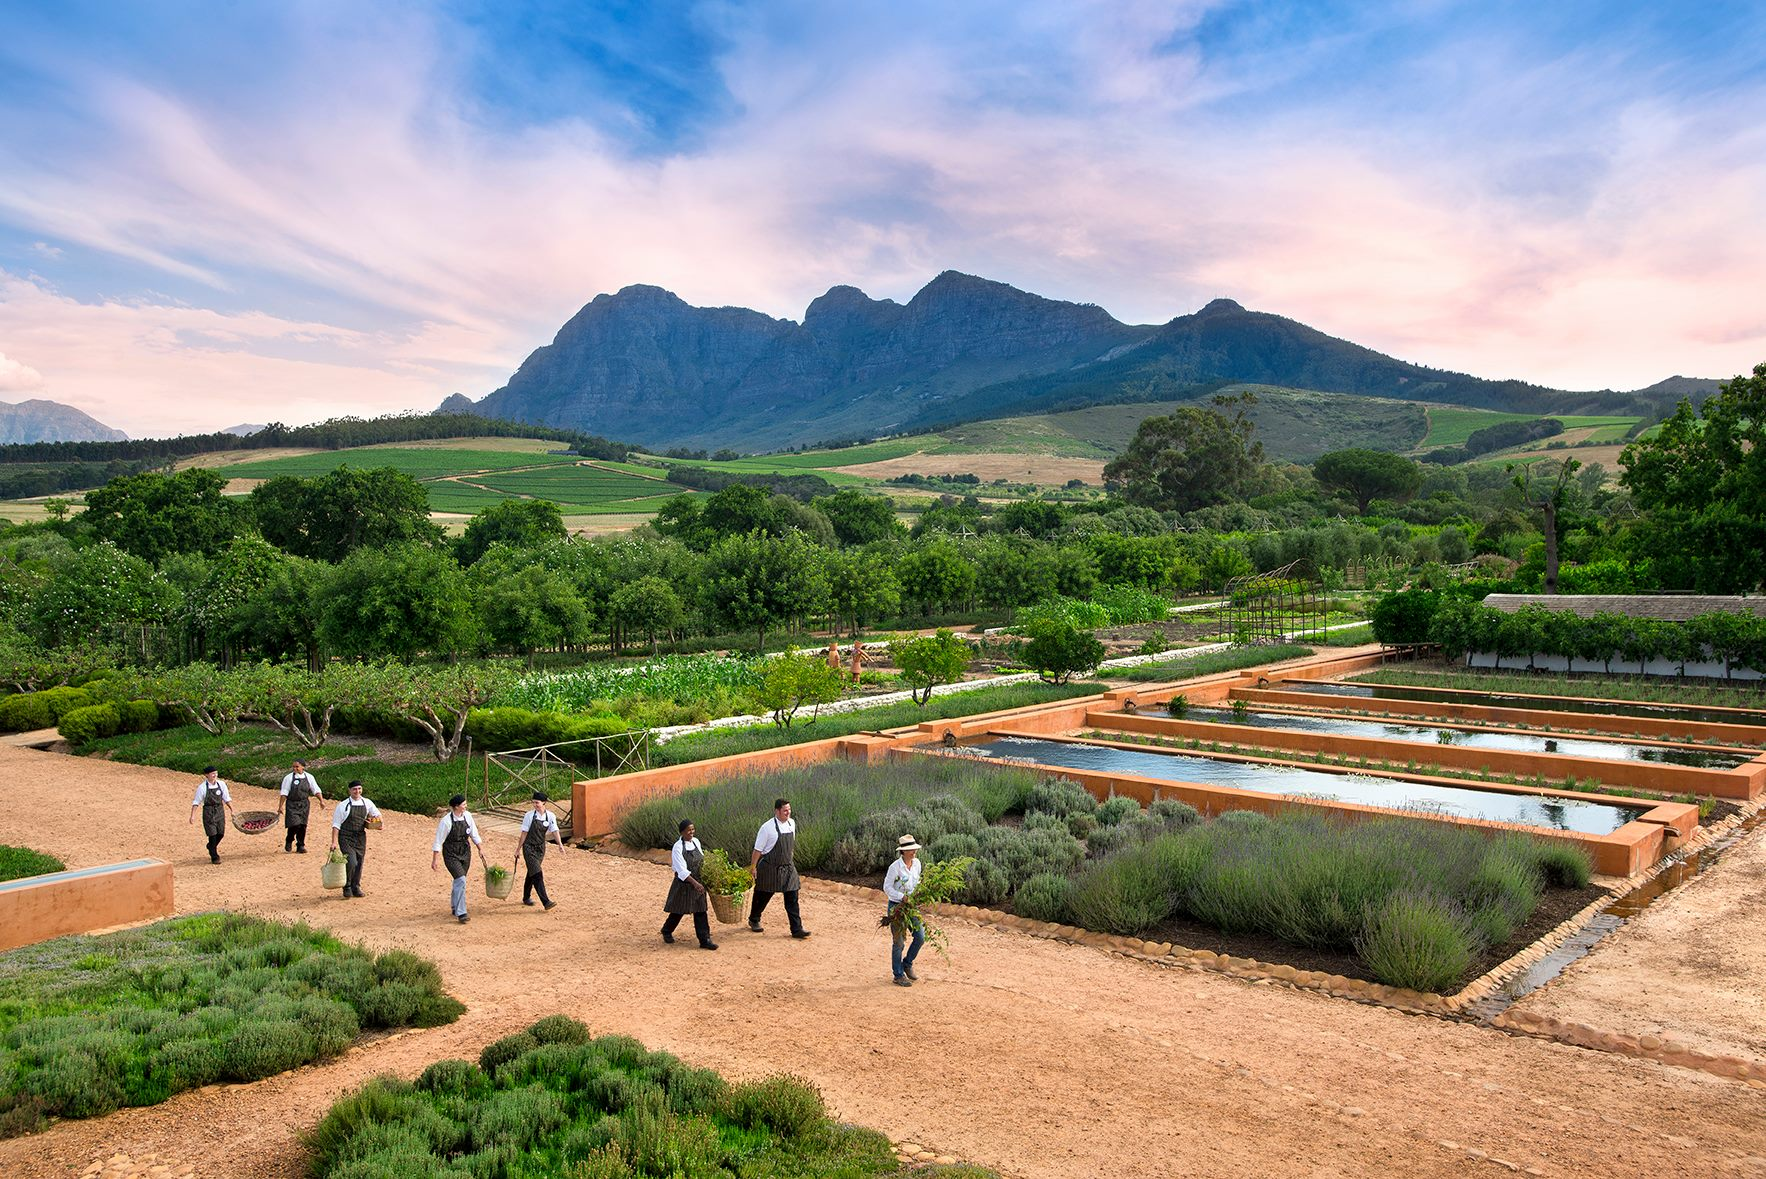 Babylonstoren south africa travel stijlmeisje for Jardin wine south africa